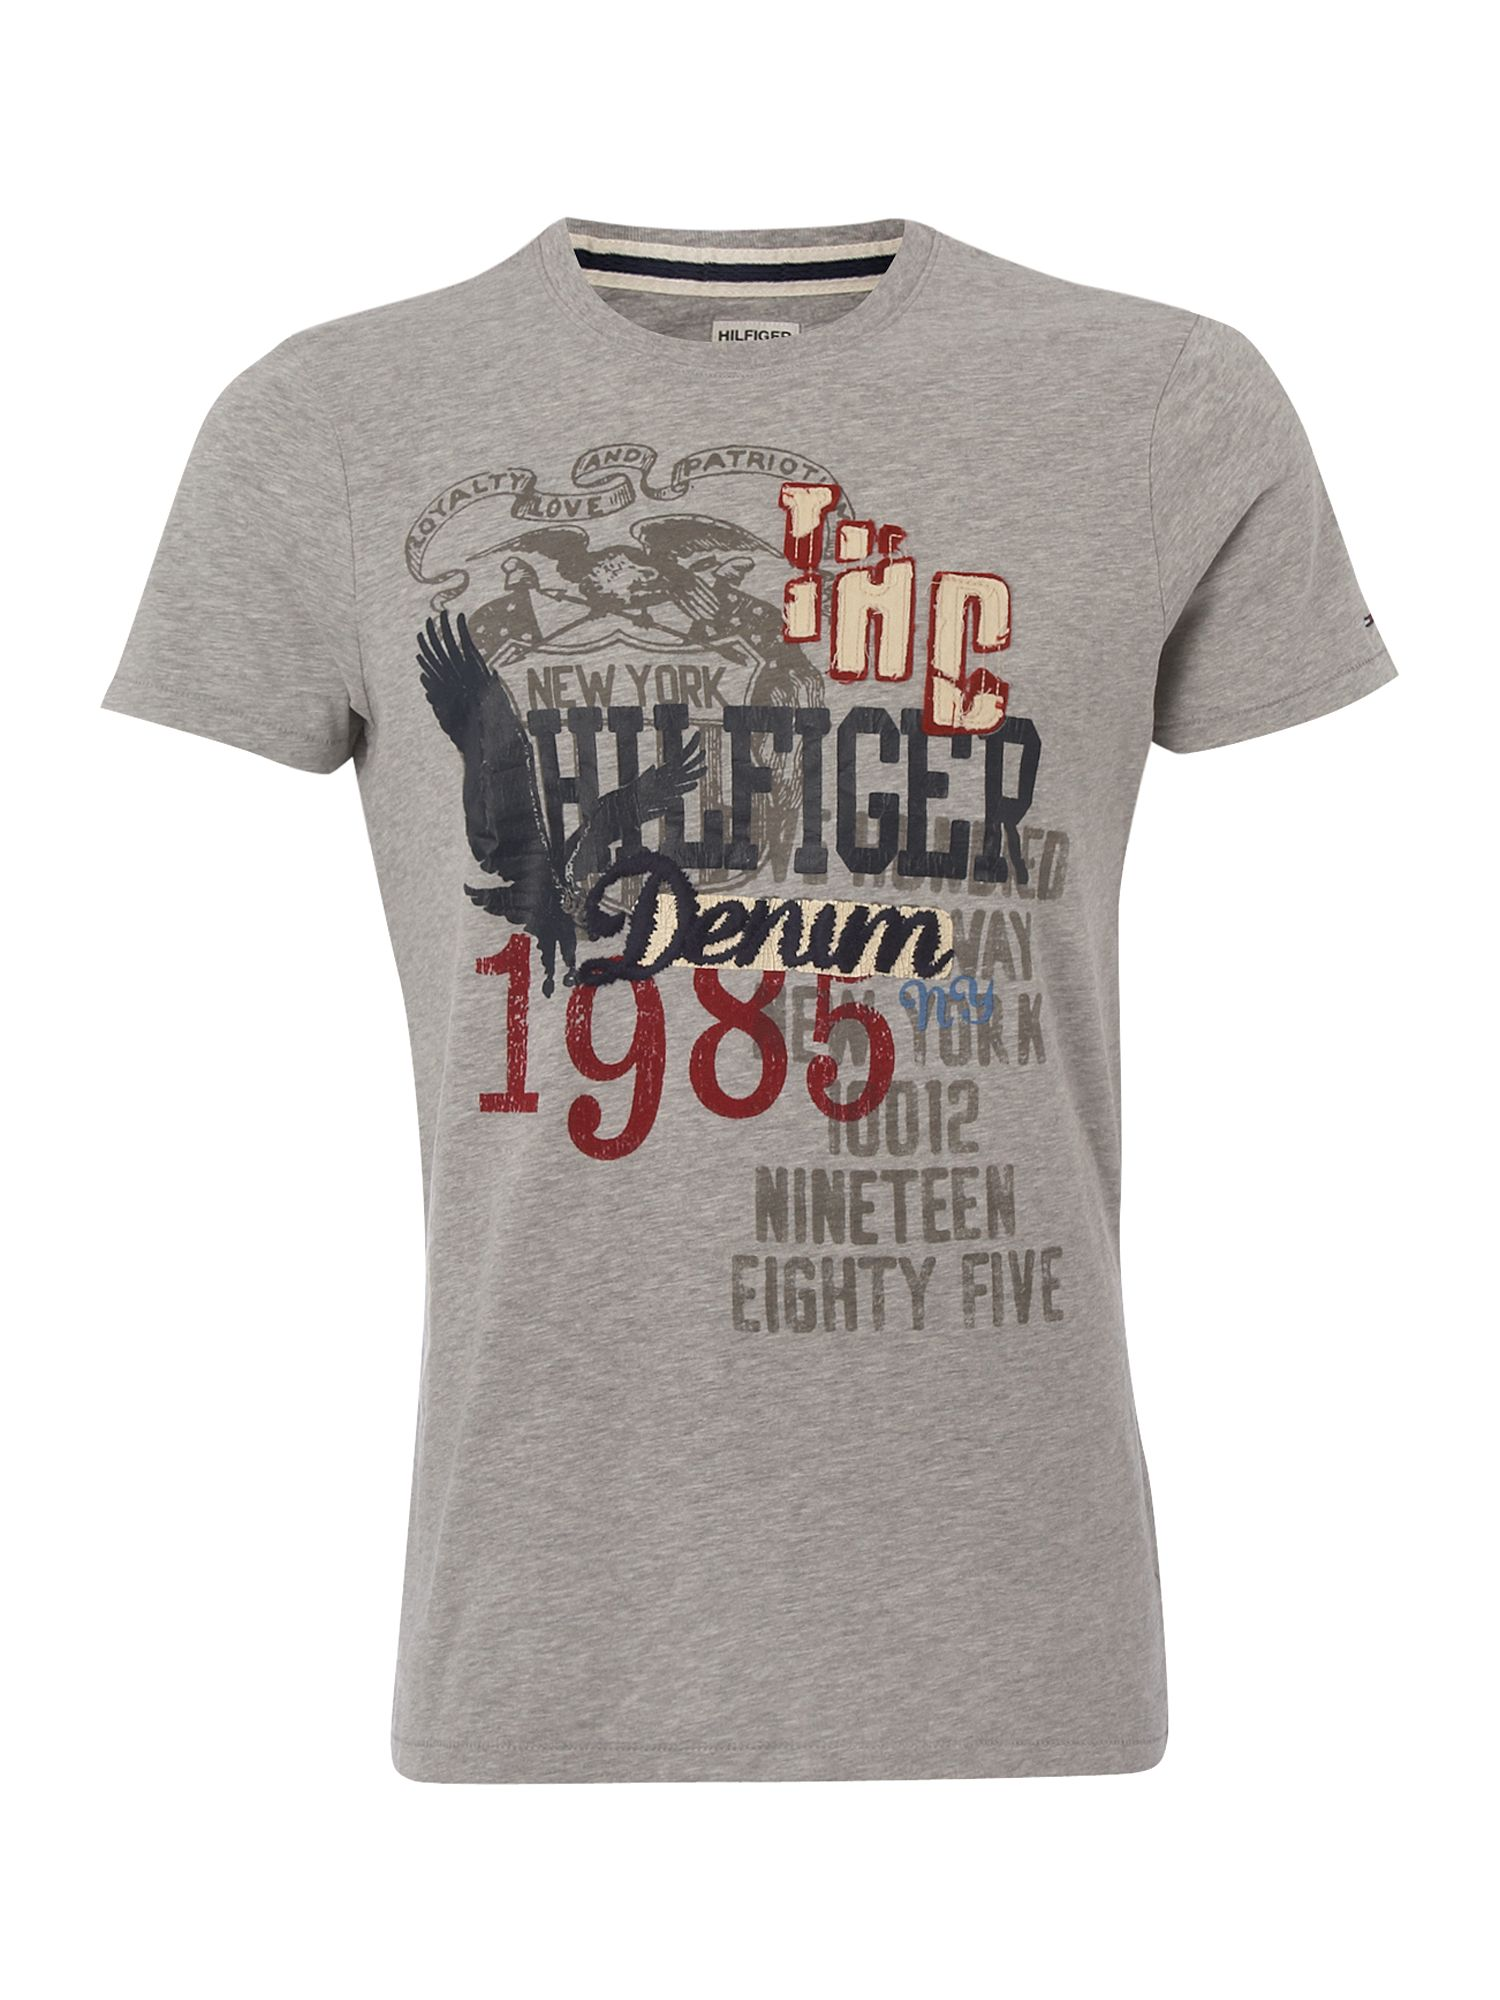 Tommy Hilfiger Eli cotton T-shirt Grey product image